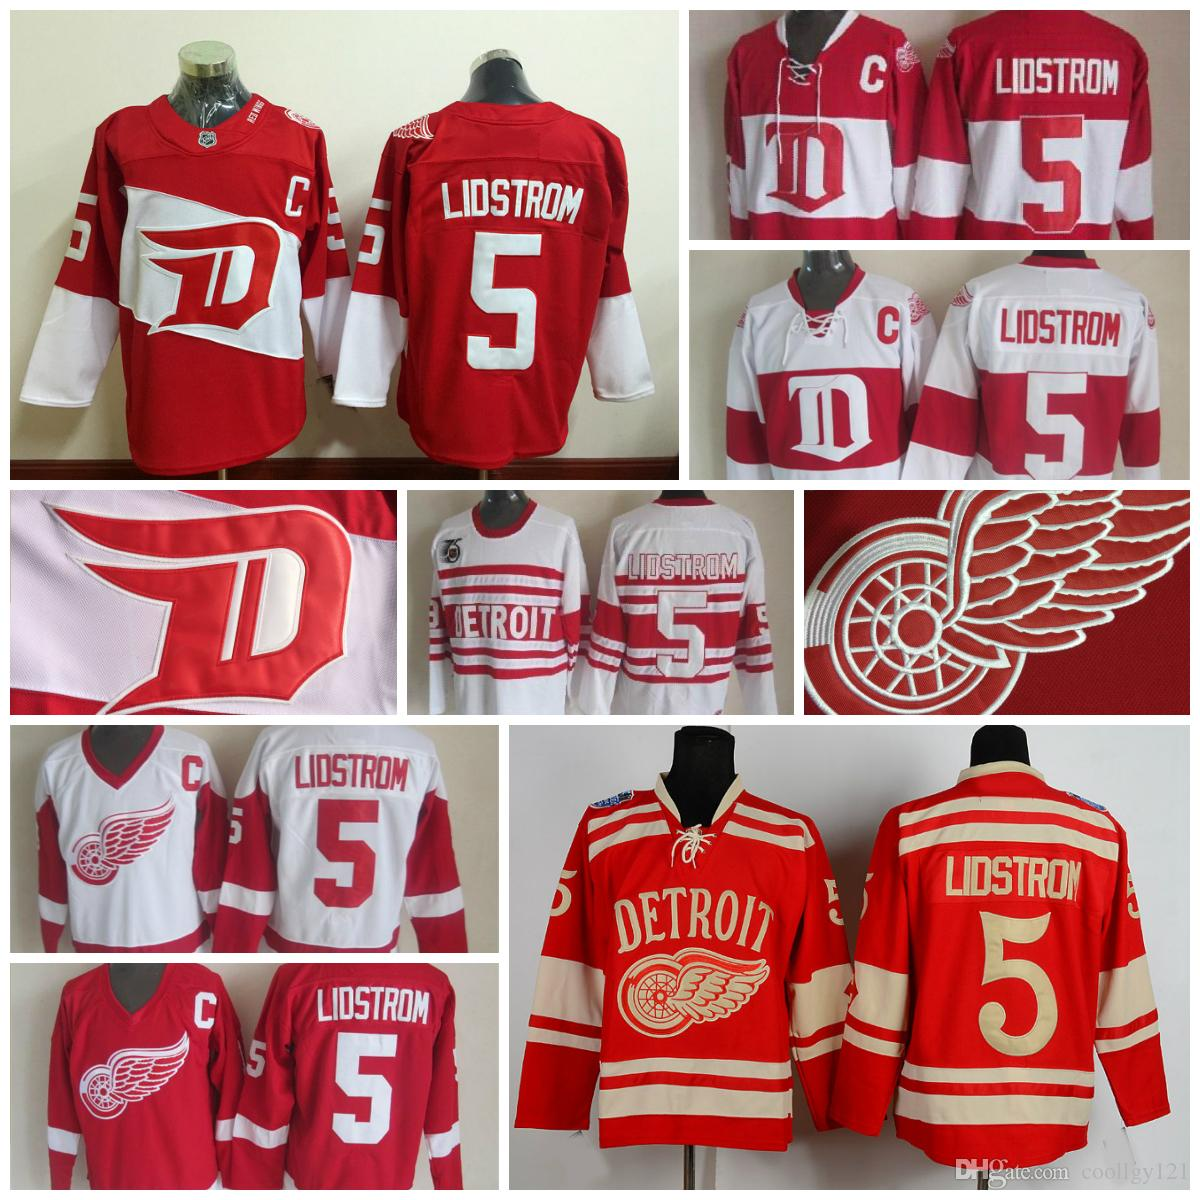 2018 Throwback Detroit Red Wings Jersey #5 Nicklas Lidstrom Jerseys Home Red  Vintage Winter Classic Red White Men Lidstrom Hockey Jerseys C Patch From  ...